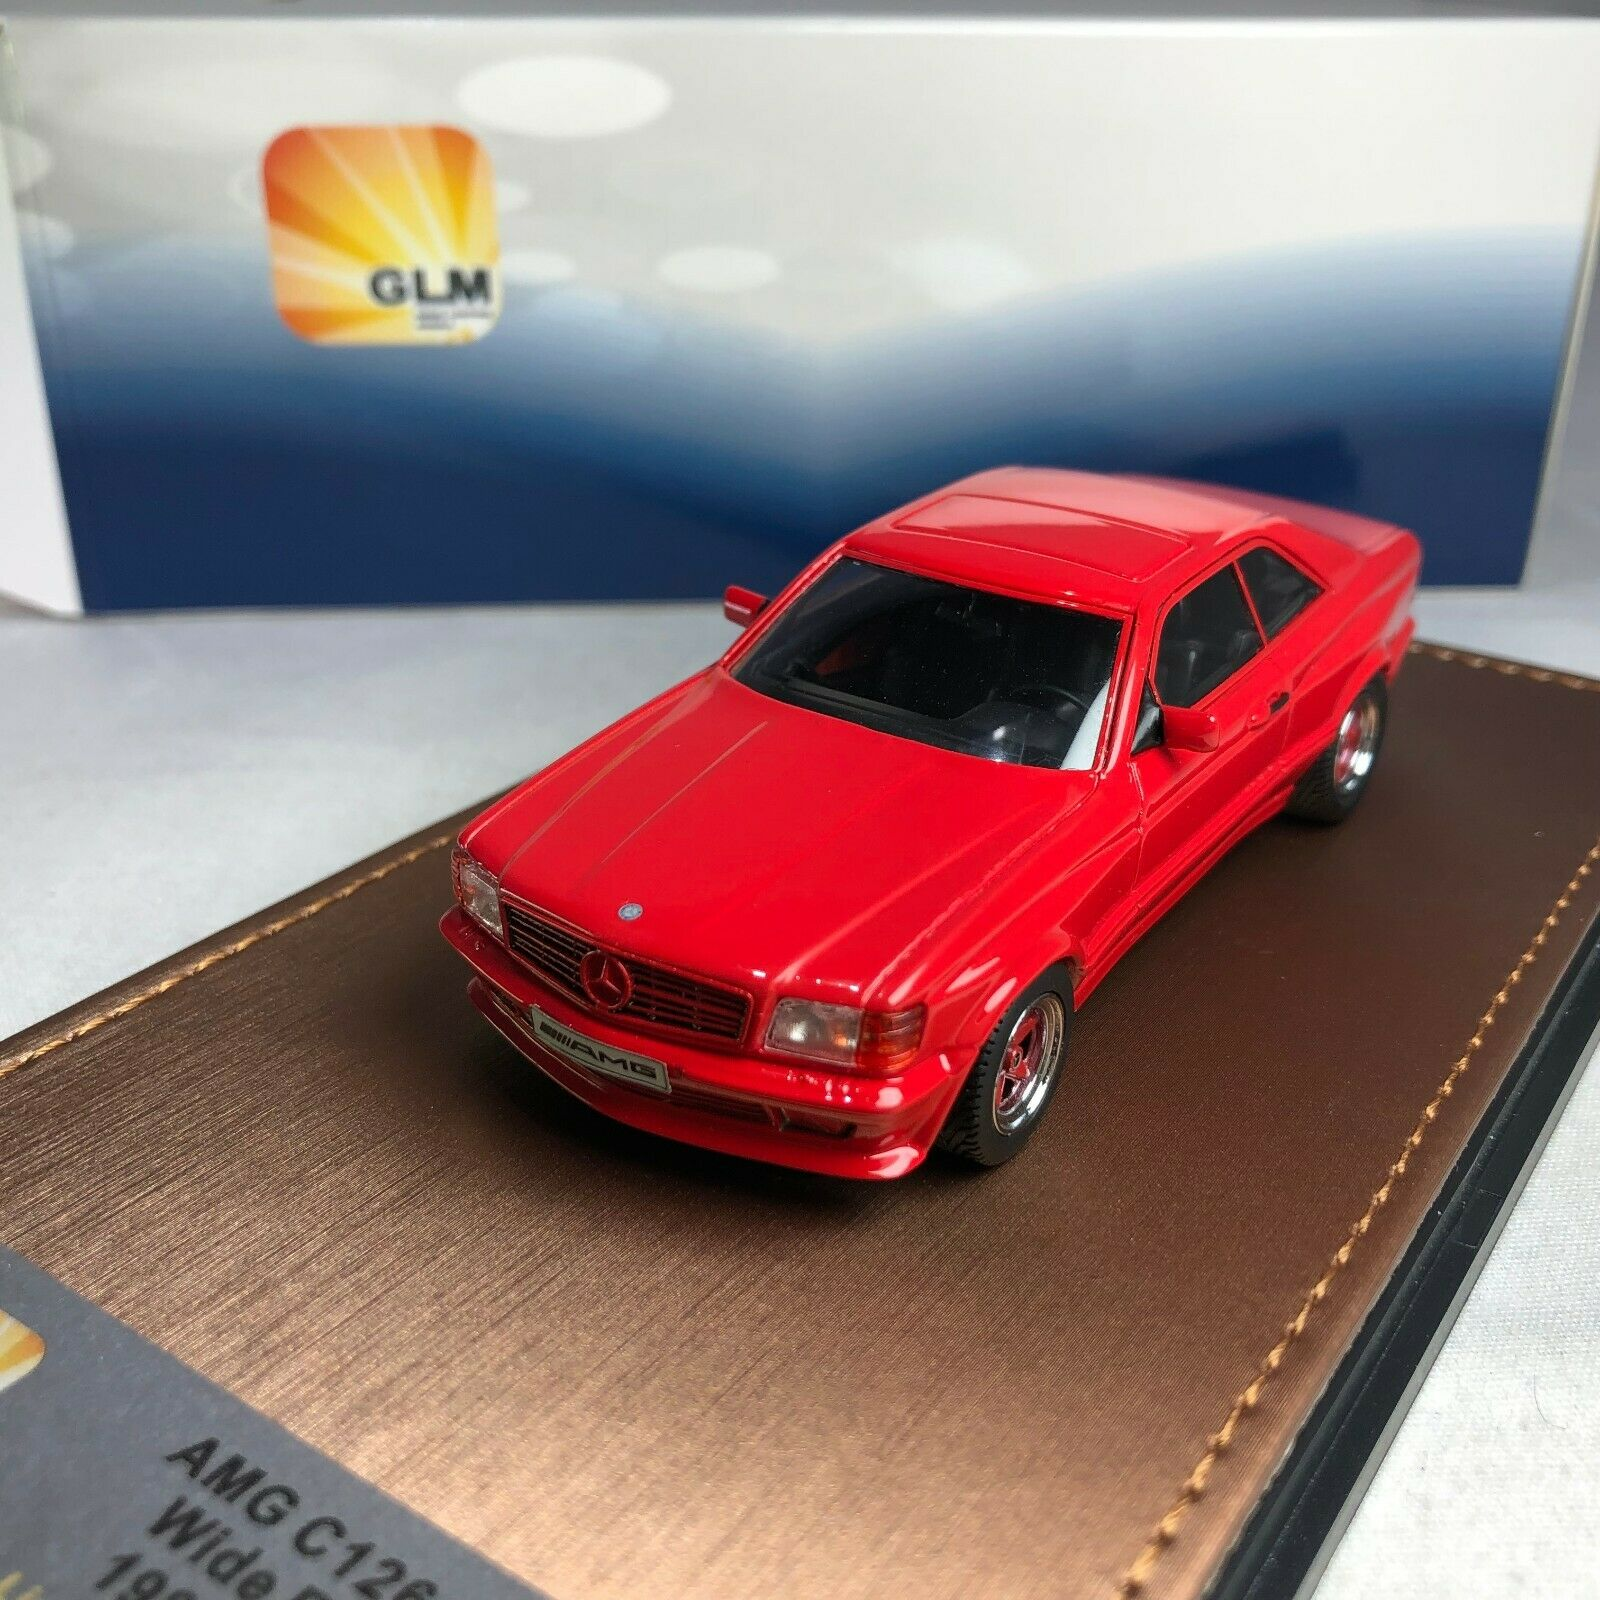 1/43 GLM Mercedes-Benz AMG C126 6.0 1984, Red GLM206601